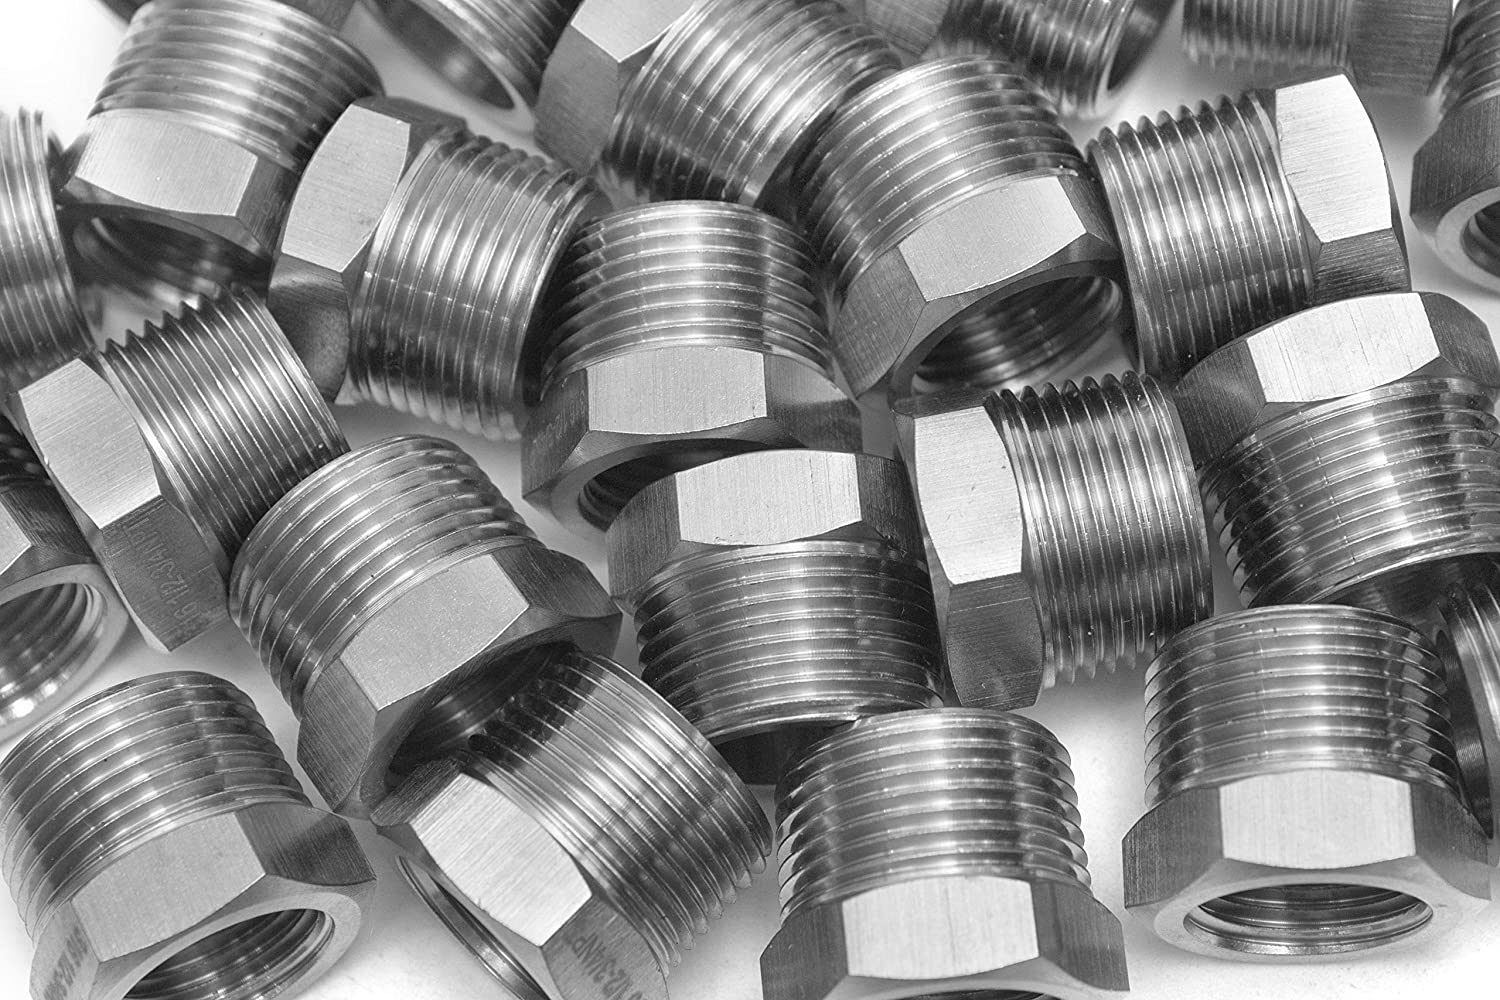 Generic Bar Production Stainless Steel 316 Pipe Hex Bushing Reducer Fittings 3/8 Male x 1/4 Female NPT Fuel Water Boat (Pack of 5) HuaxinYicheng Trade Co. Ltd.